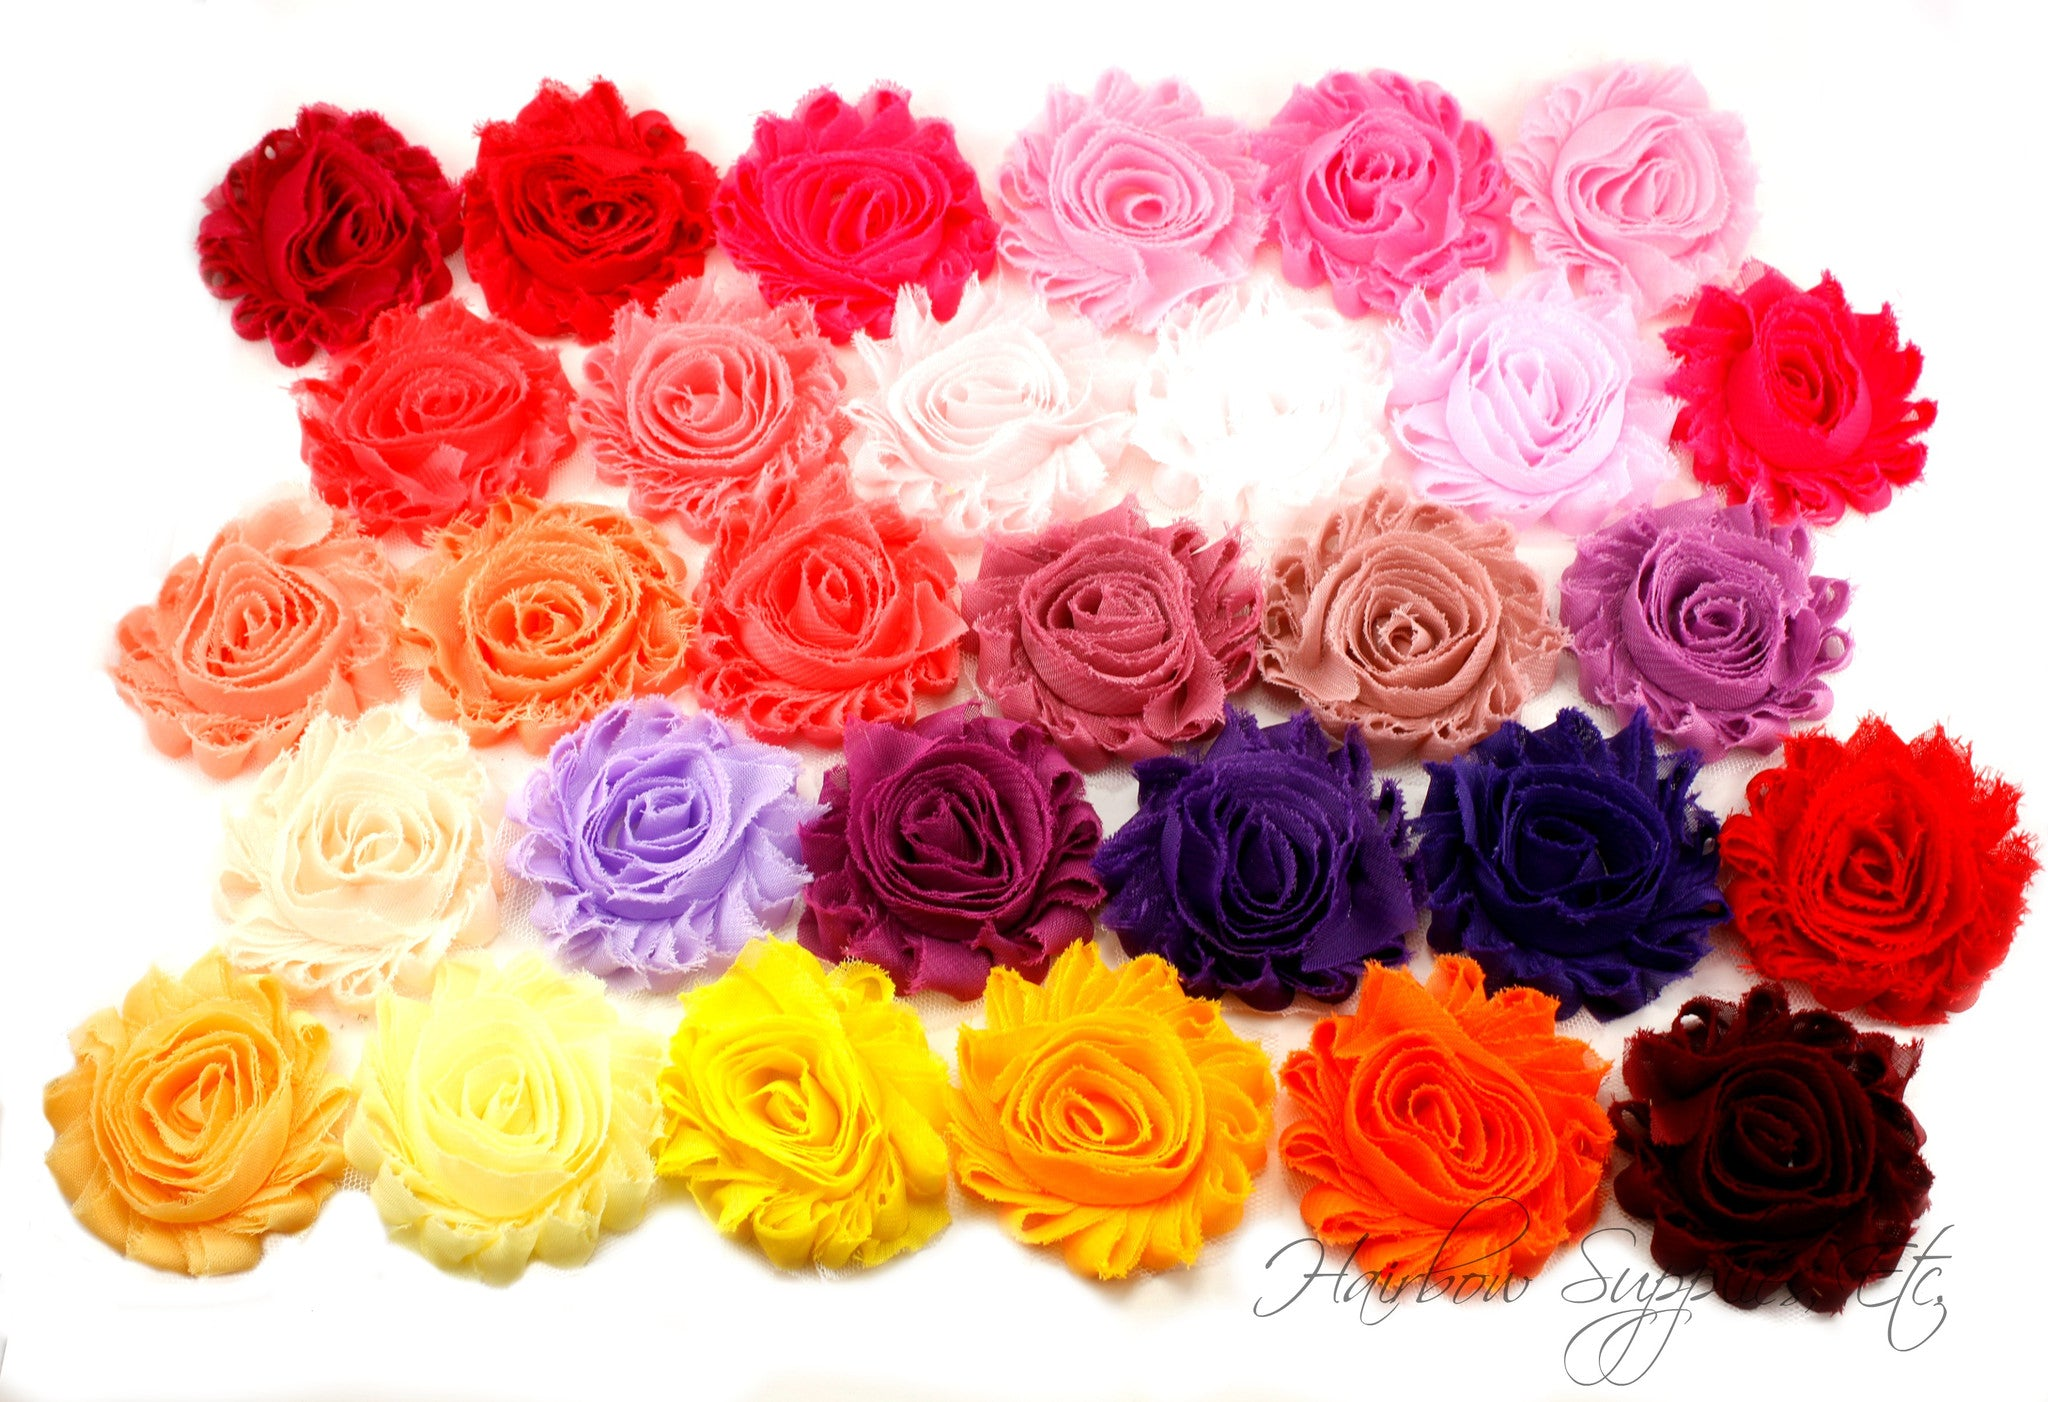 Shabby flowers 2.5 inches - solid (pinks, purples and yellows)